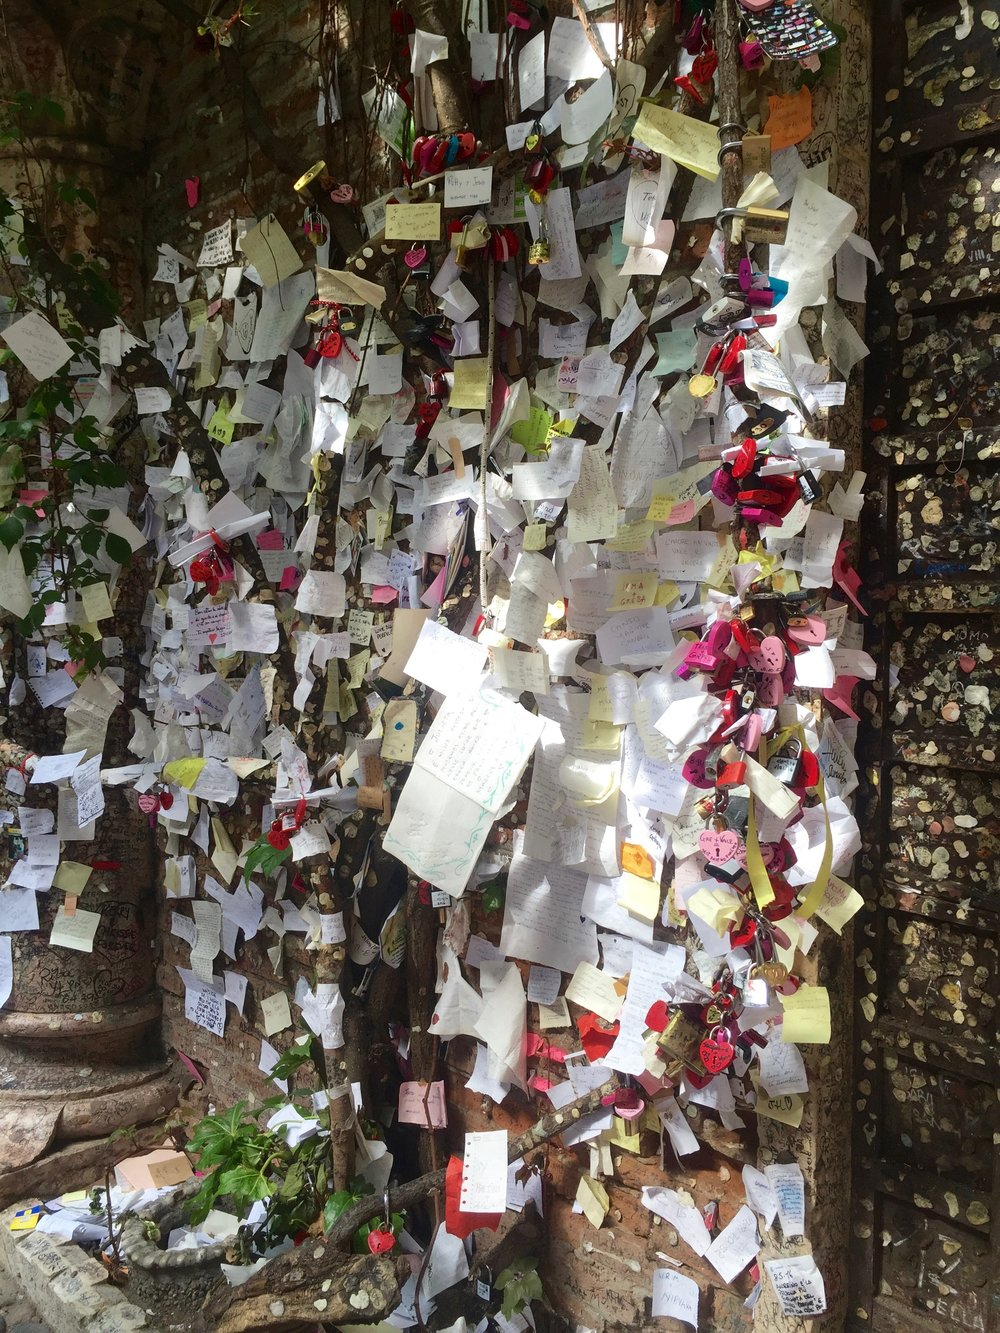 A wall full of love letters and locks left by visitors